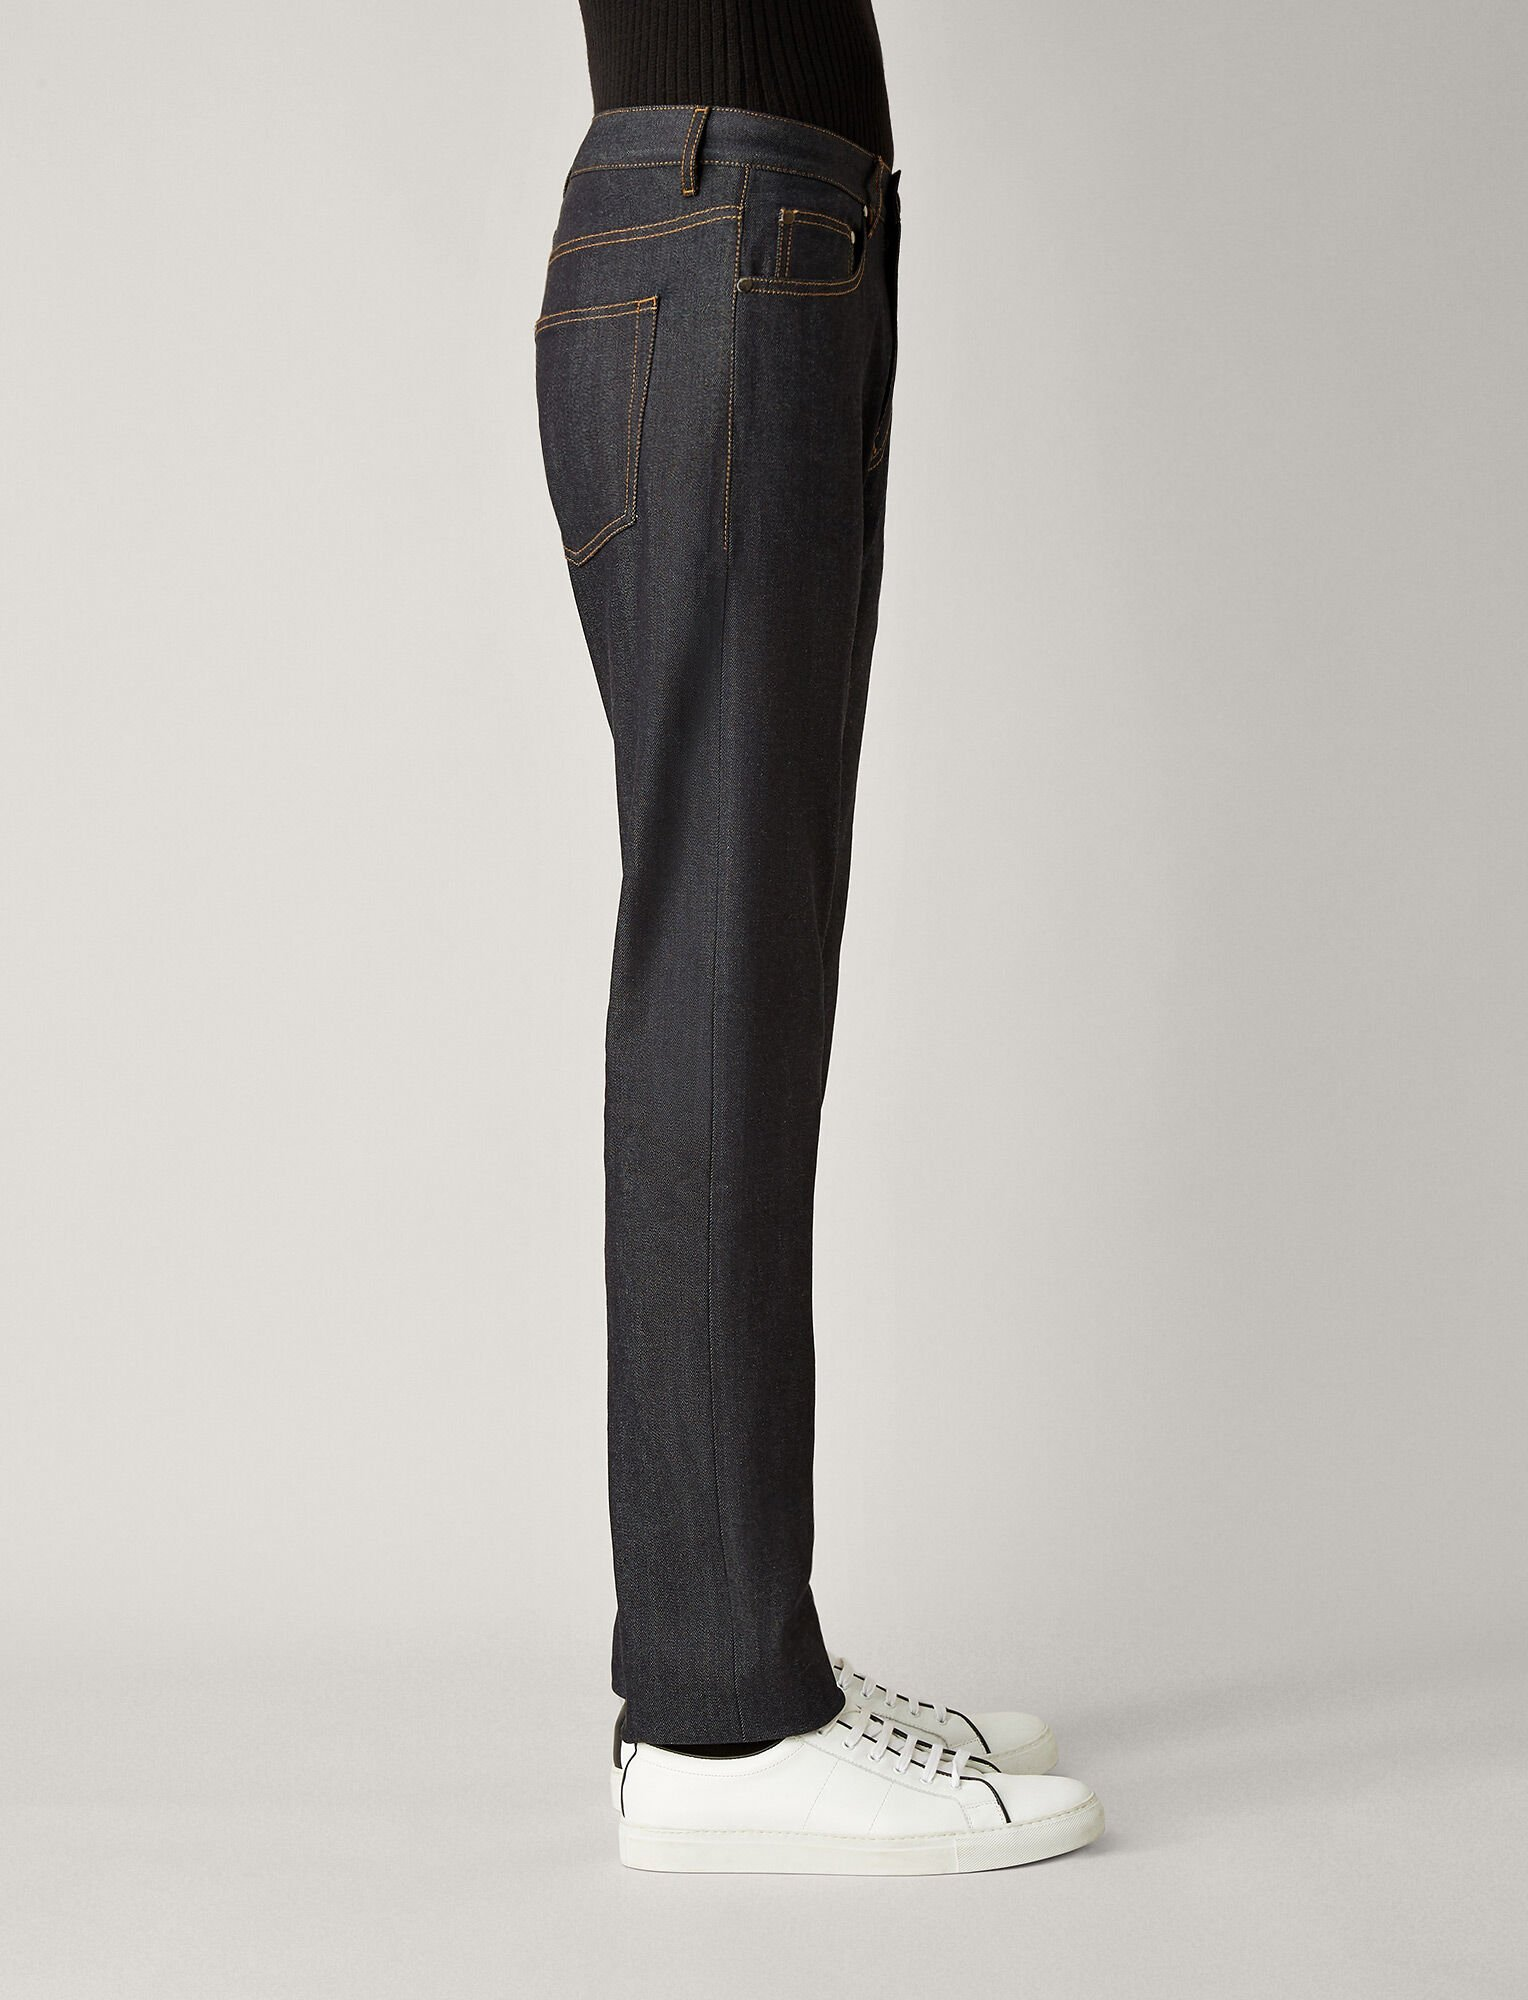 Joseph, Denim Stretch James Trousers, in DARK INDIGO